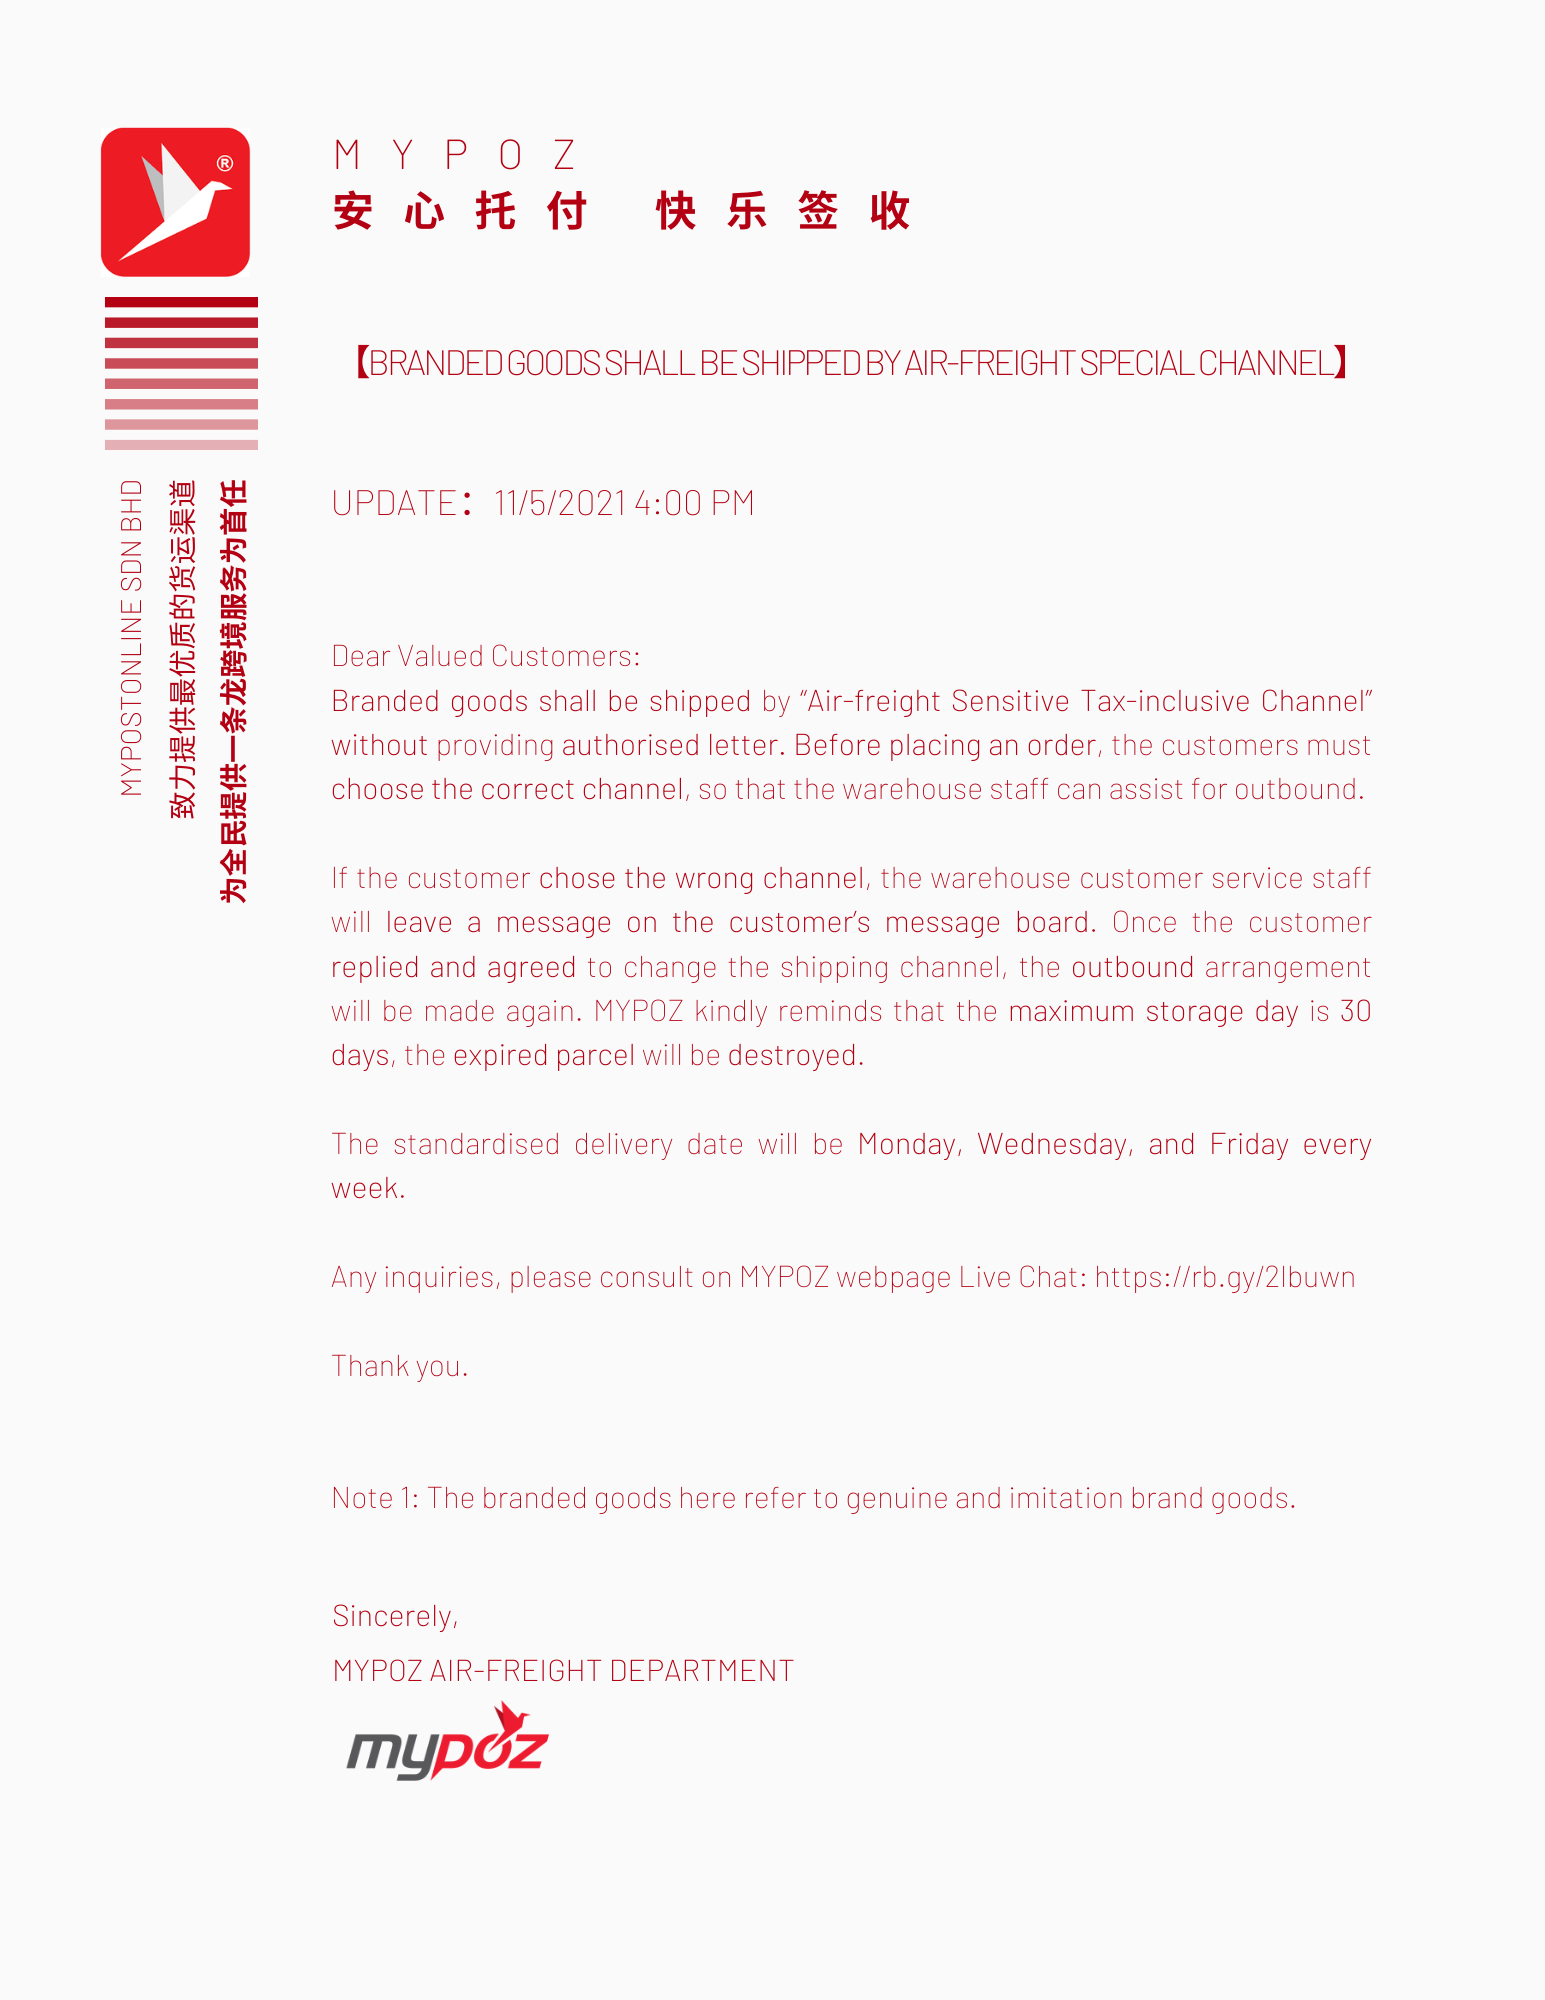 【NOTICE】BRANDED GOODS SHALL BE SHIPPED BY AIR-FREIGHT SPECIAL CHANNEL